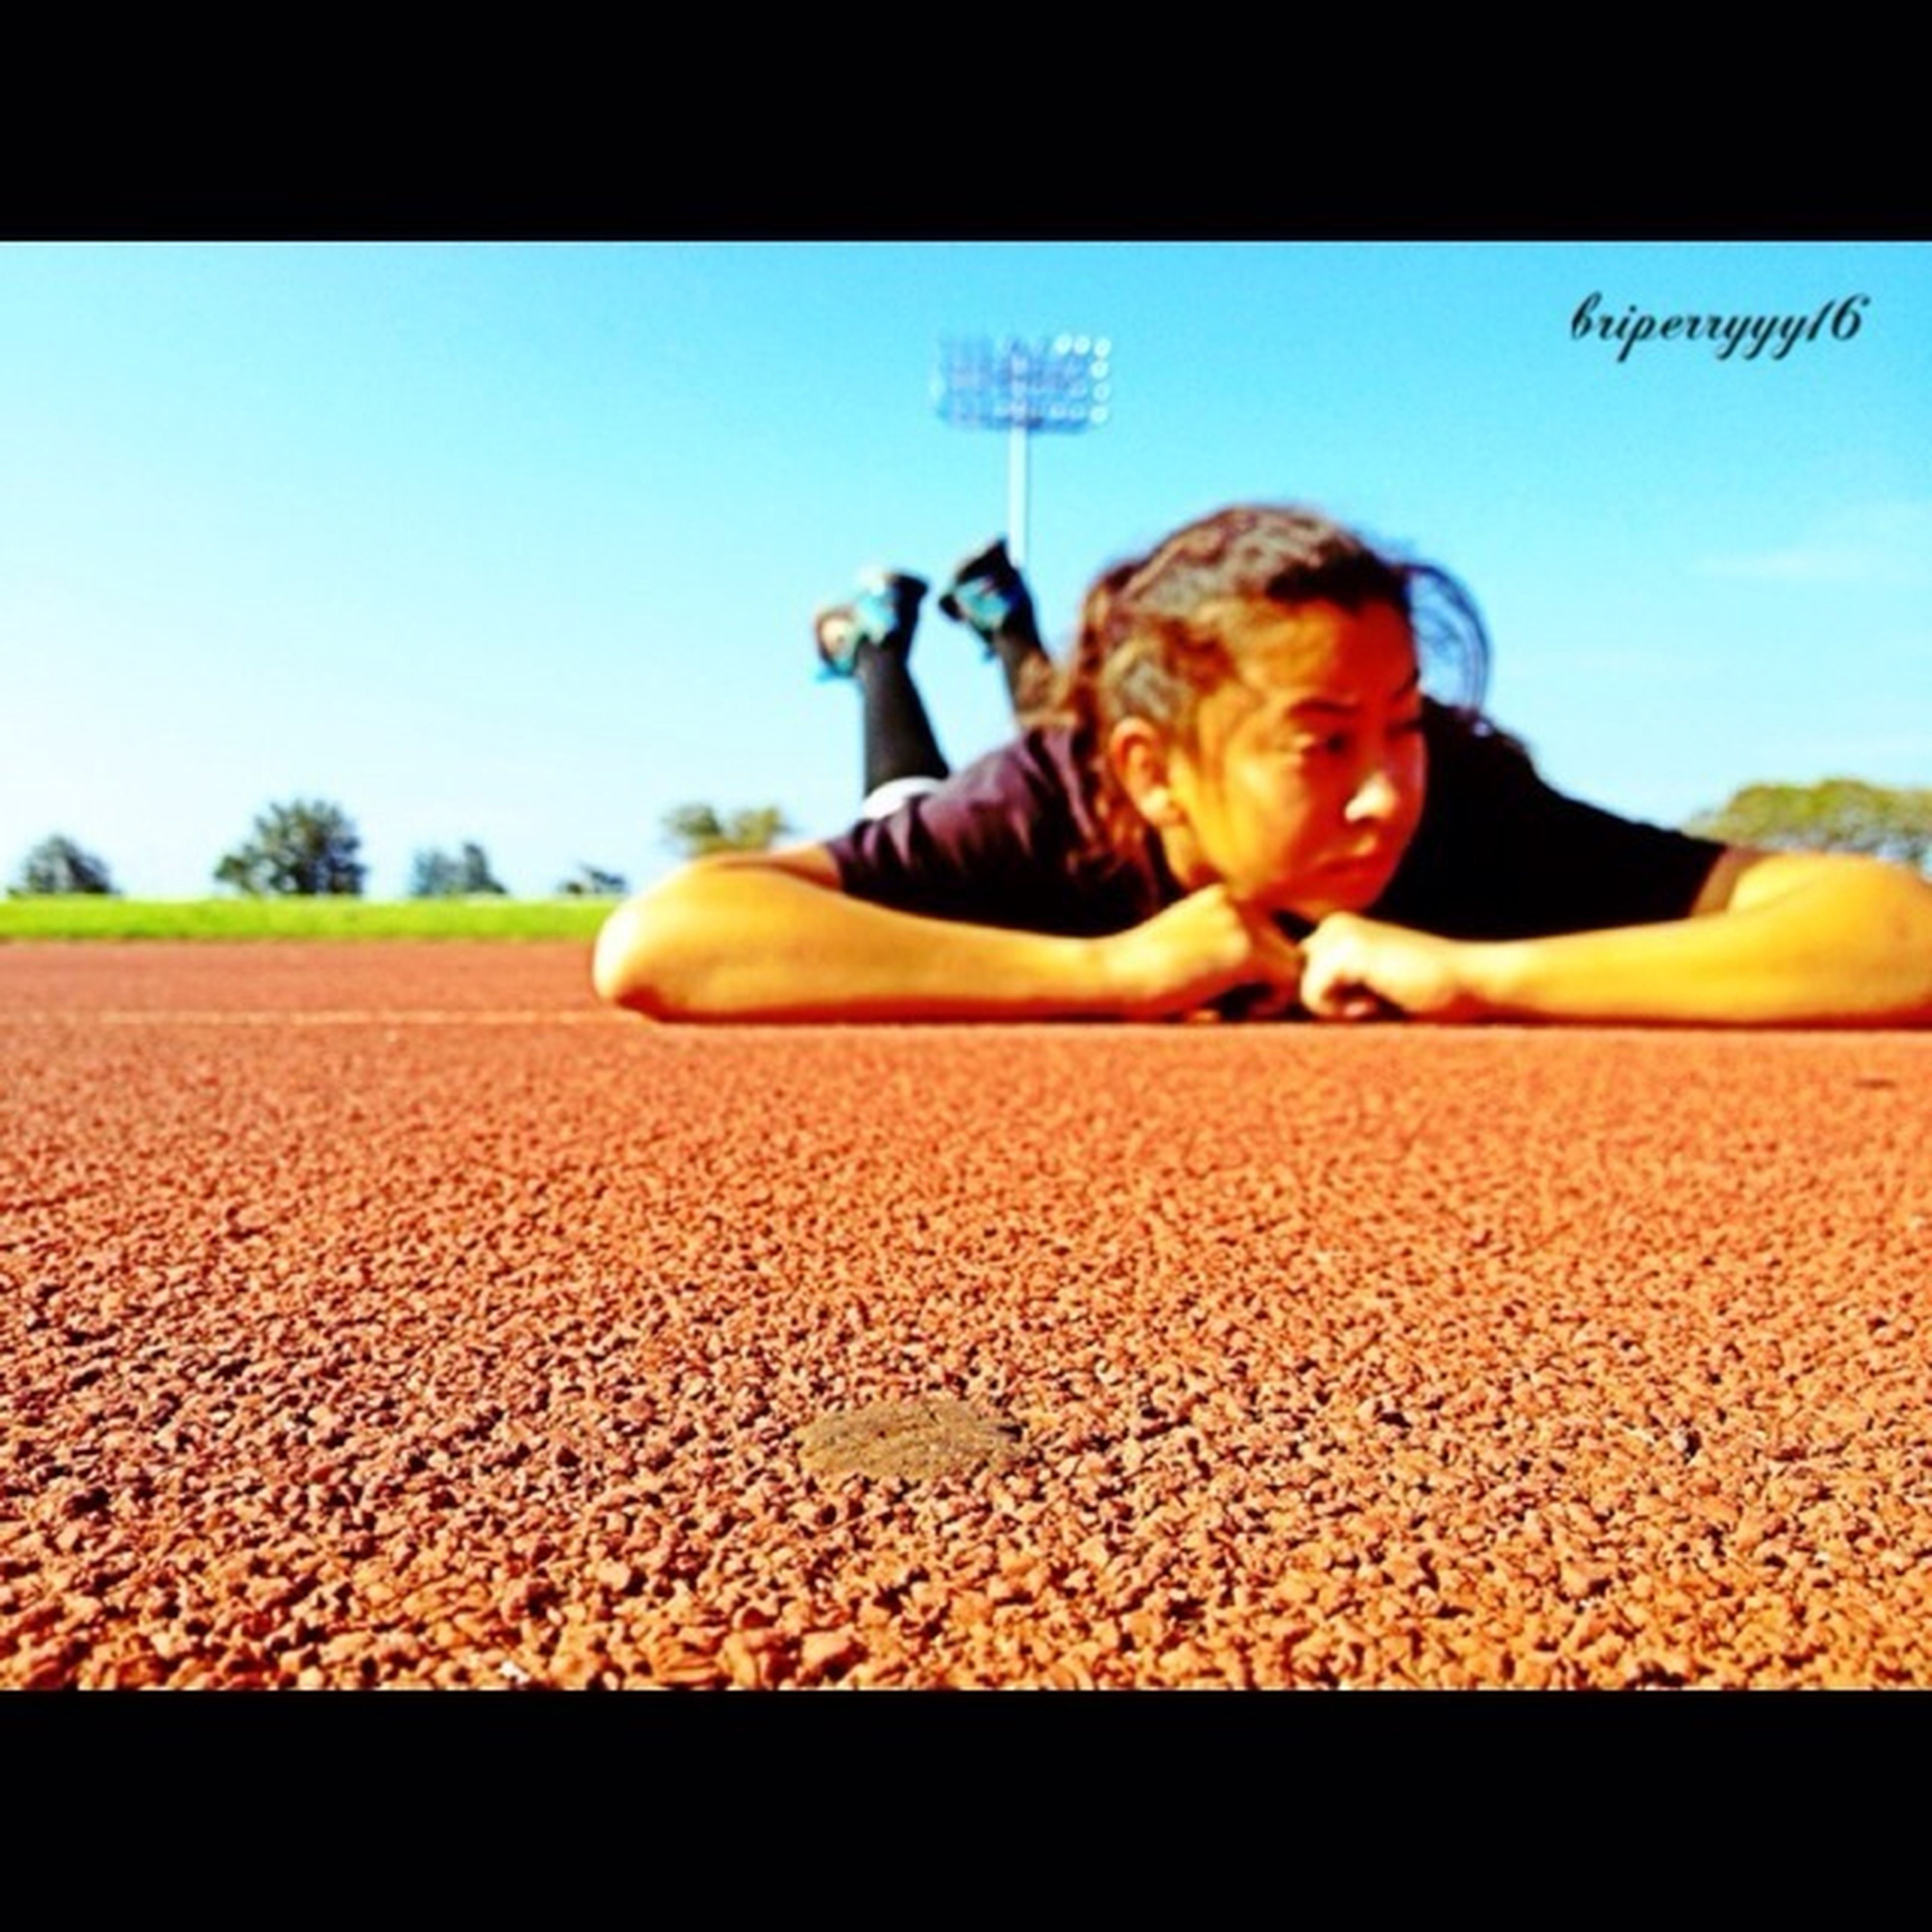 transfer print, lifestyles, clear sky, childhood, leisure activity, auto post production filter, elementary age, person, casual clothing, full length, boys, girls, fun, enjoyment, togetherness, playing, copy space